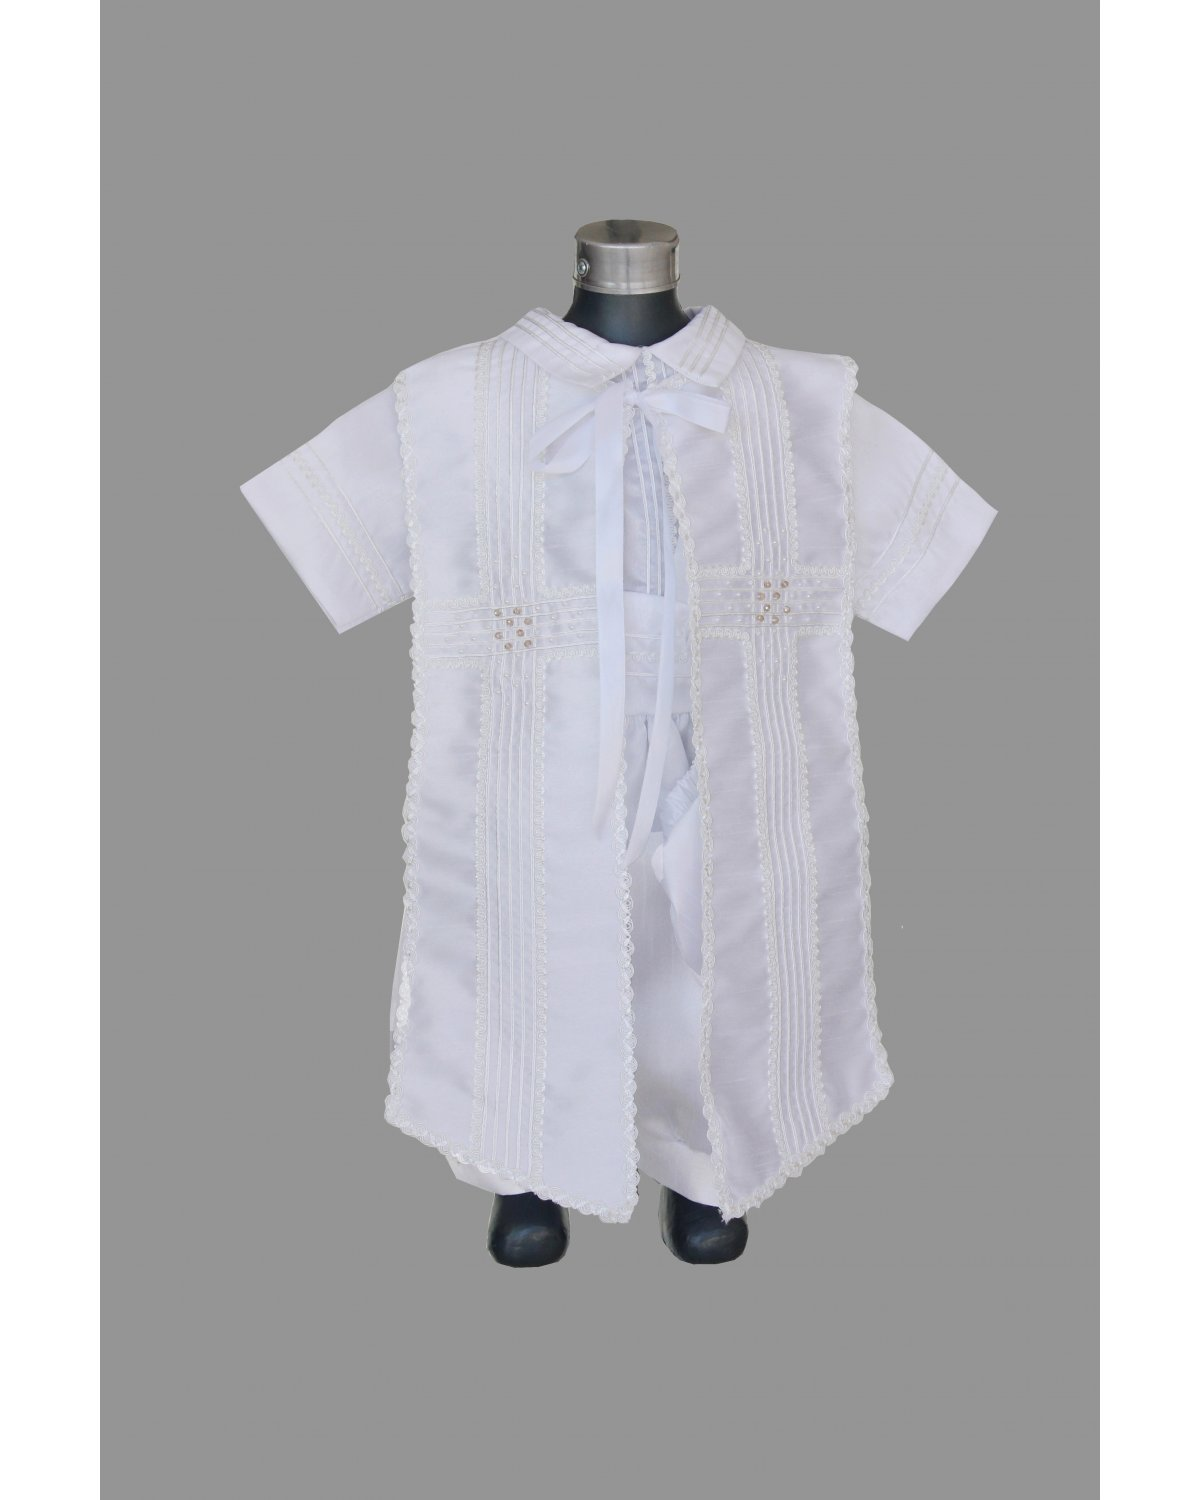 Boy Ceremonial Robe Model Pictures